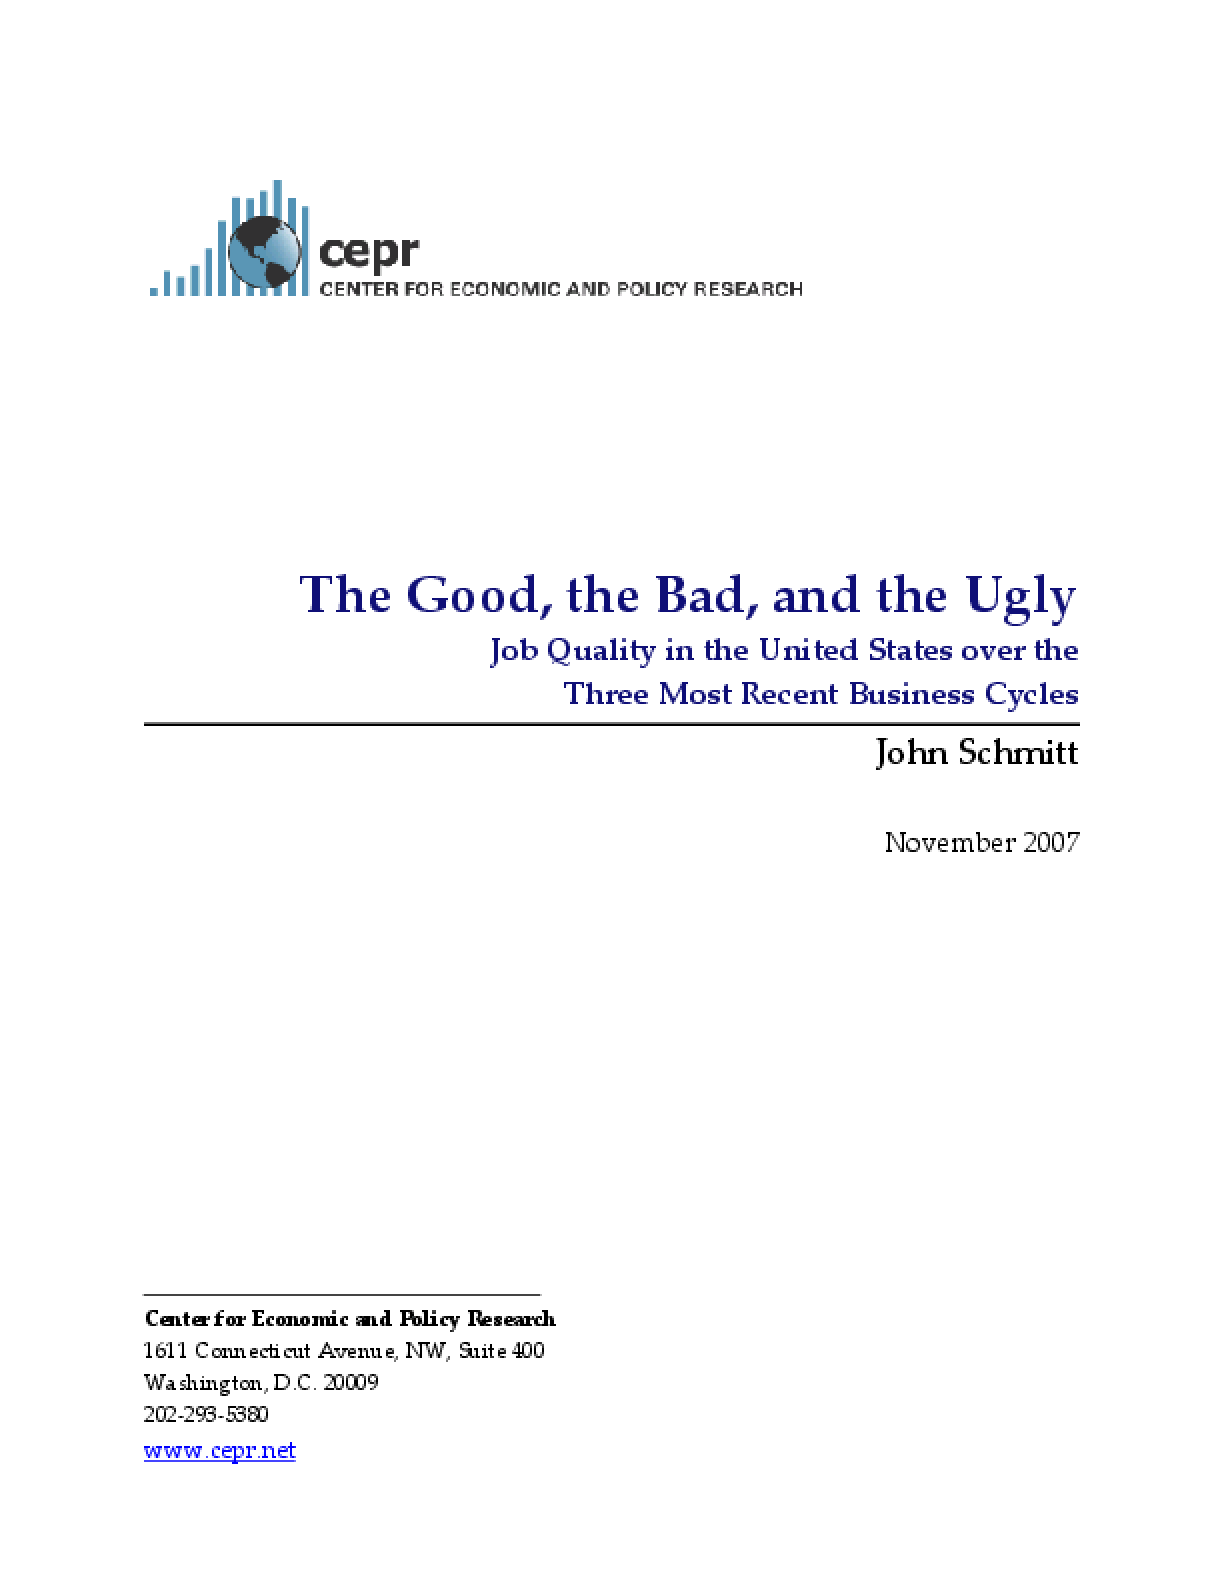 The Good, The Bad, and the Ugly: Job Quality in the United States over the Three Most Recent Business Cycles